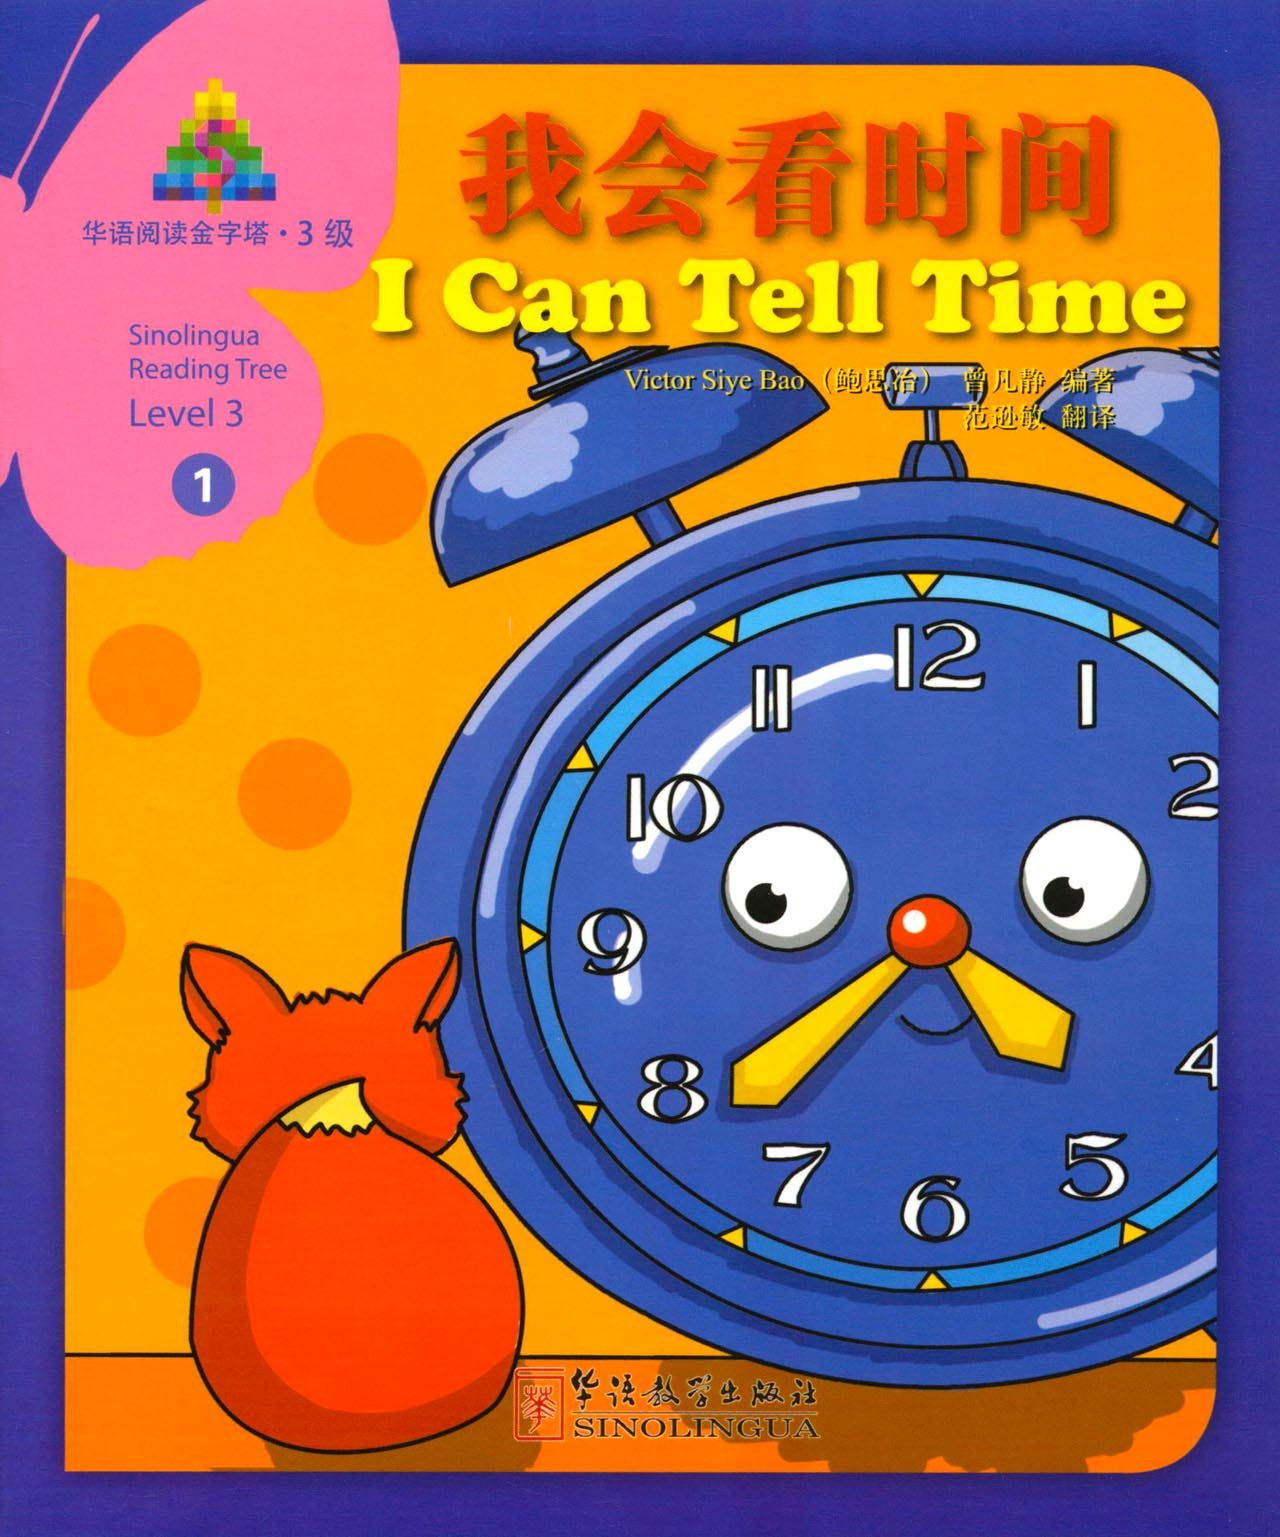 I Can Tell Time - Sinolingua Reading Tree Level 3